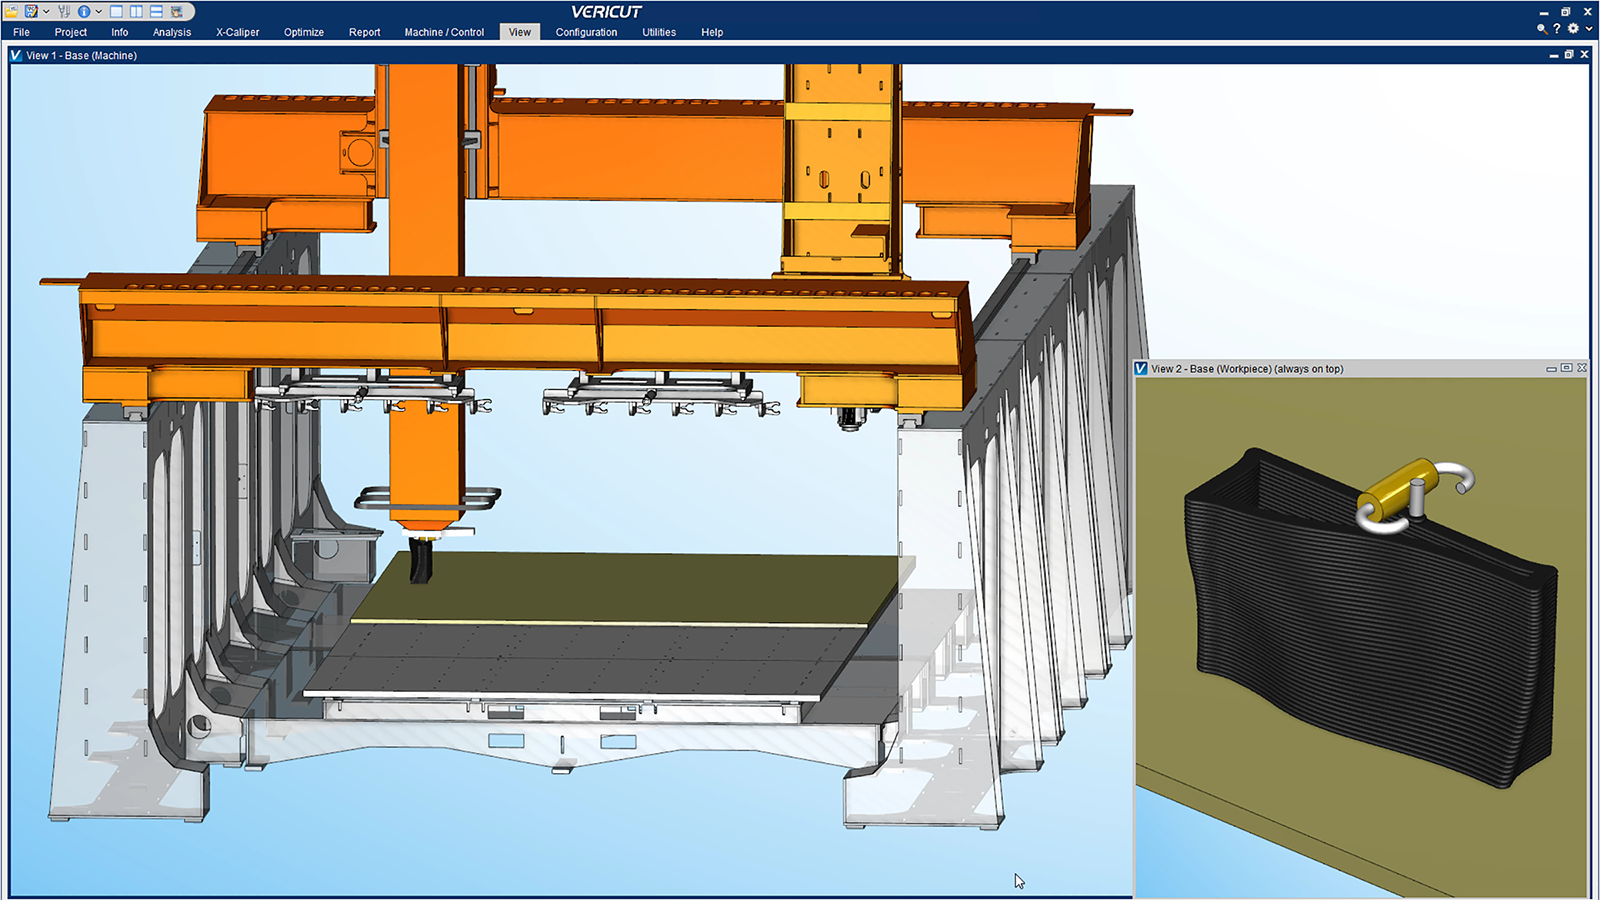 Simulation of Thermwood's 3D printing process. Image via CGTech.